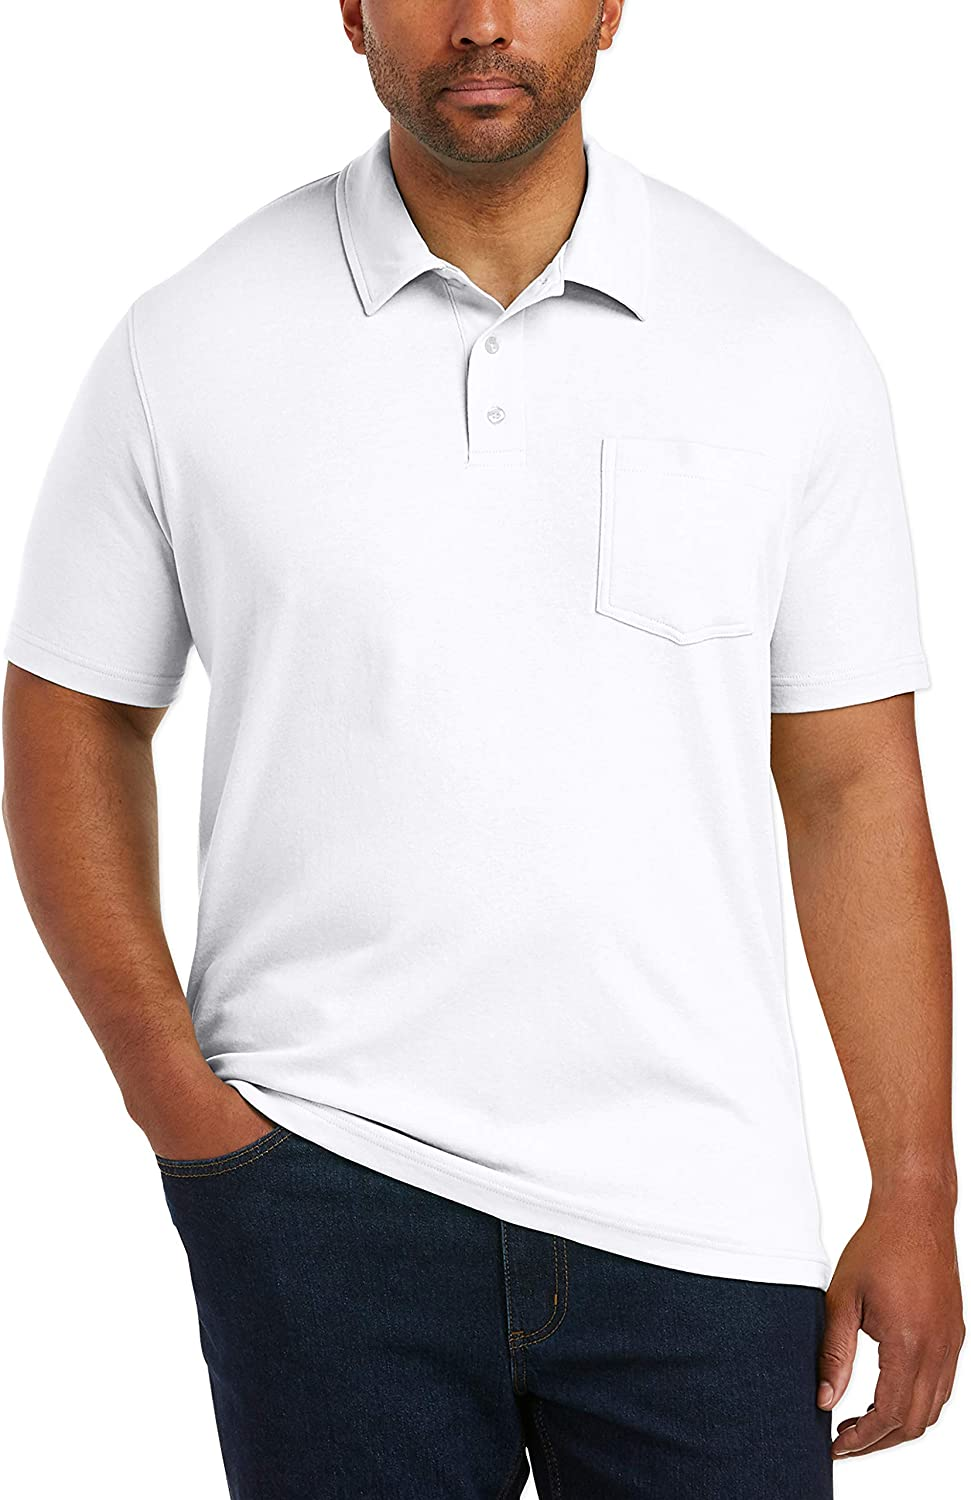 Essentials Mens Big & Tall Jersey Polo Shirt fit by DXL Polos Big ...